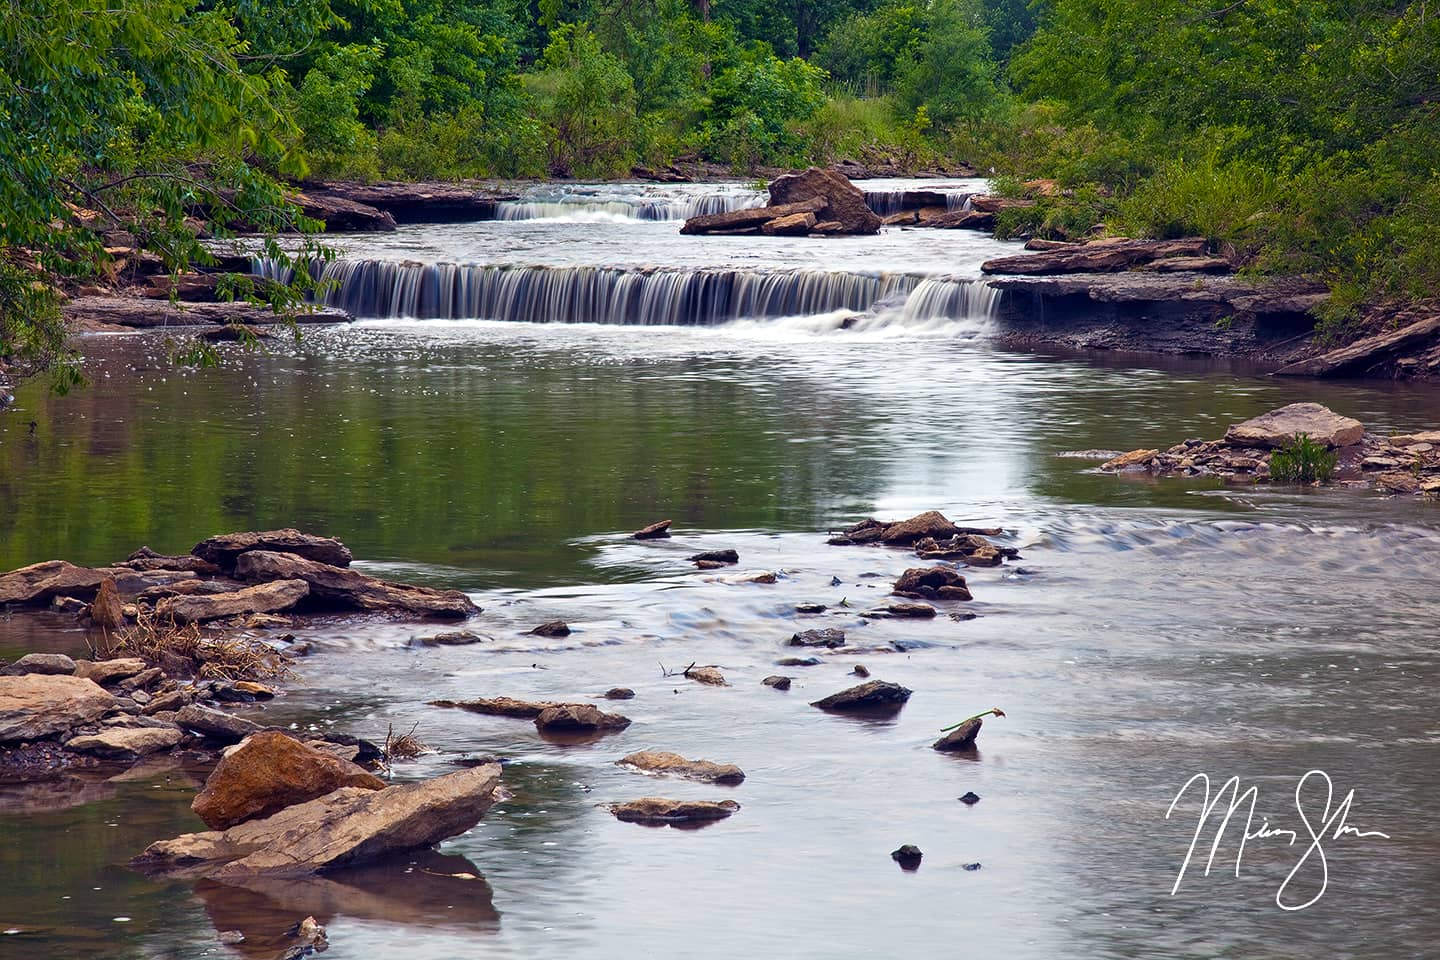 Open edition fine art print of Wildcat Creek Falls from Mickey Shannon Photography. Location: Moline, Kansas